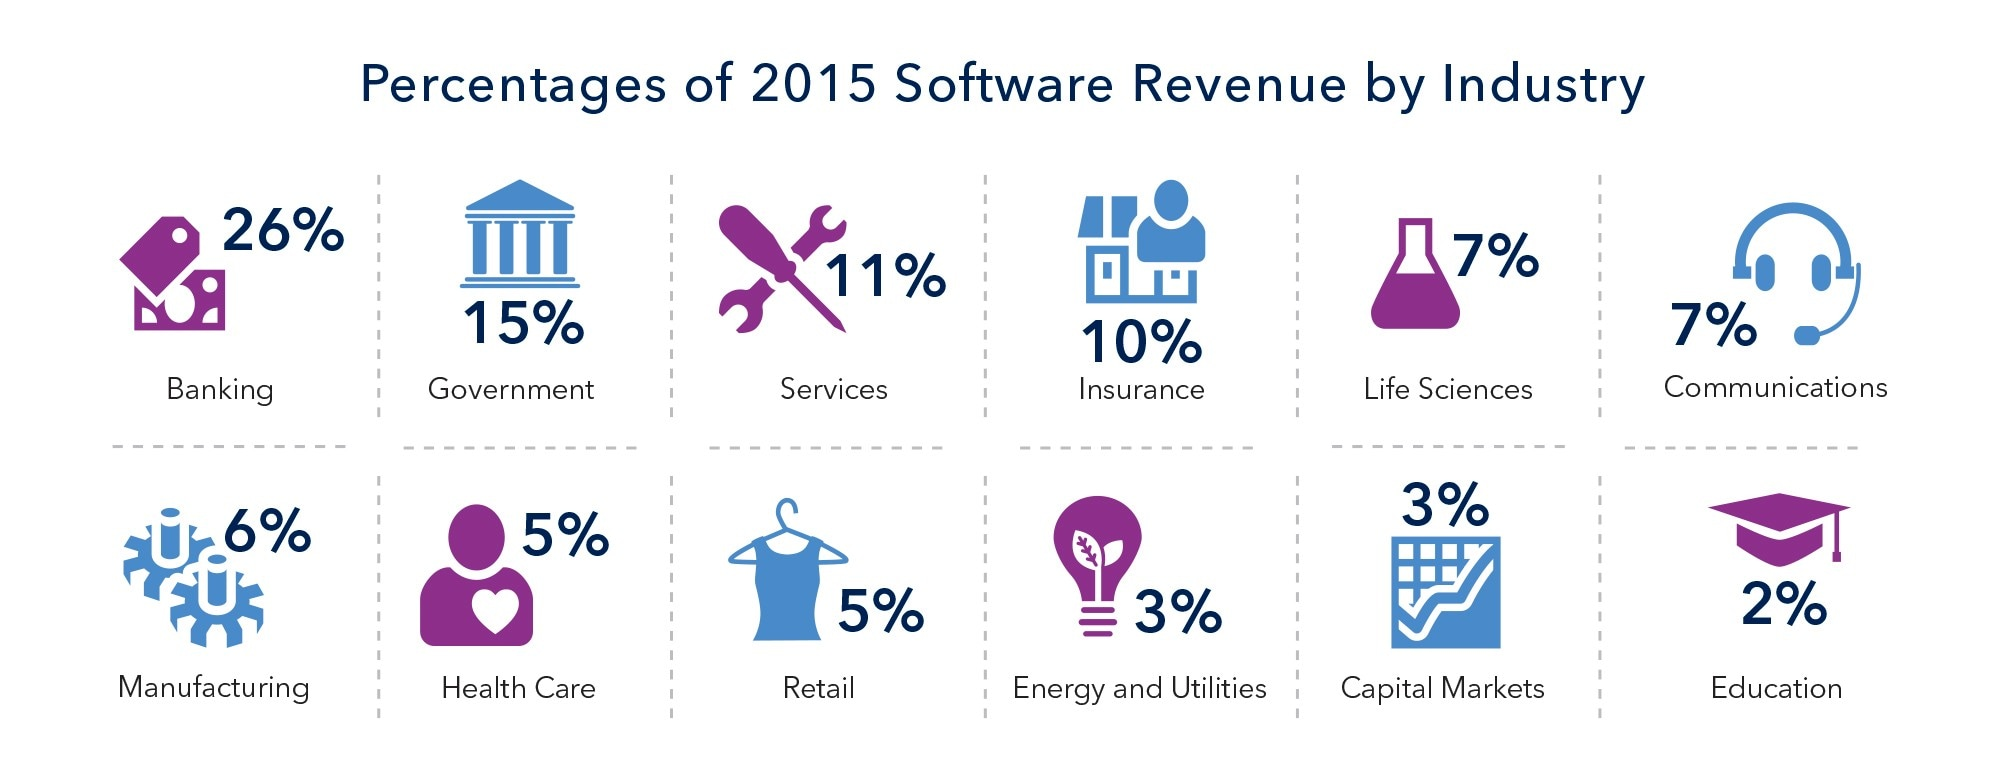 SAS 2015 software revenue by industry